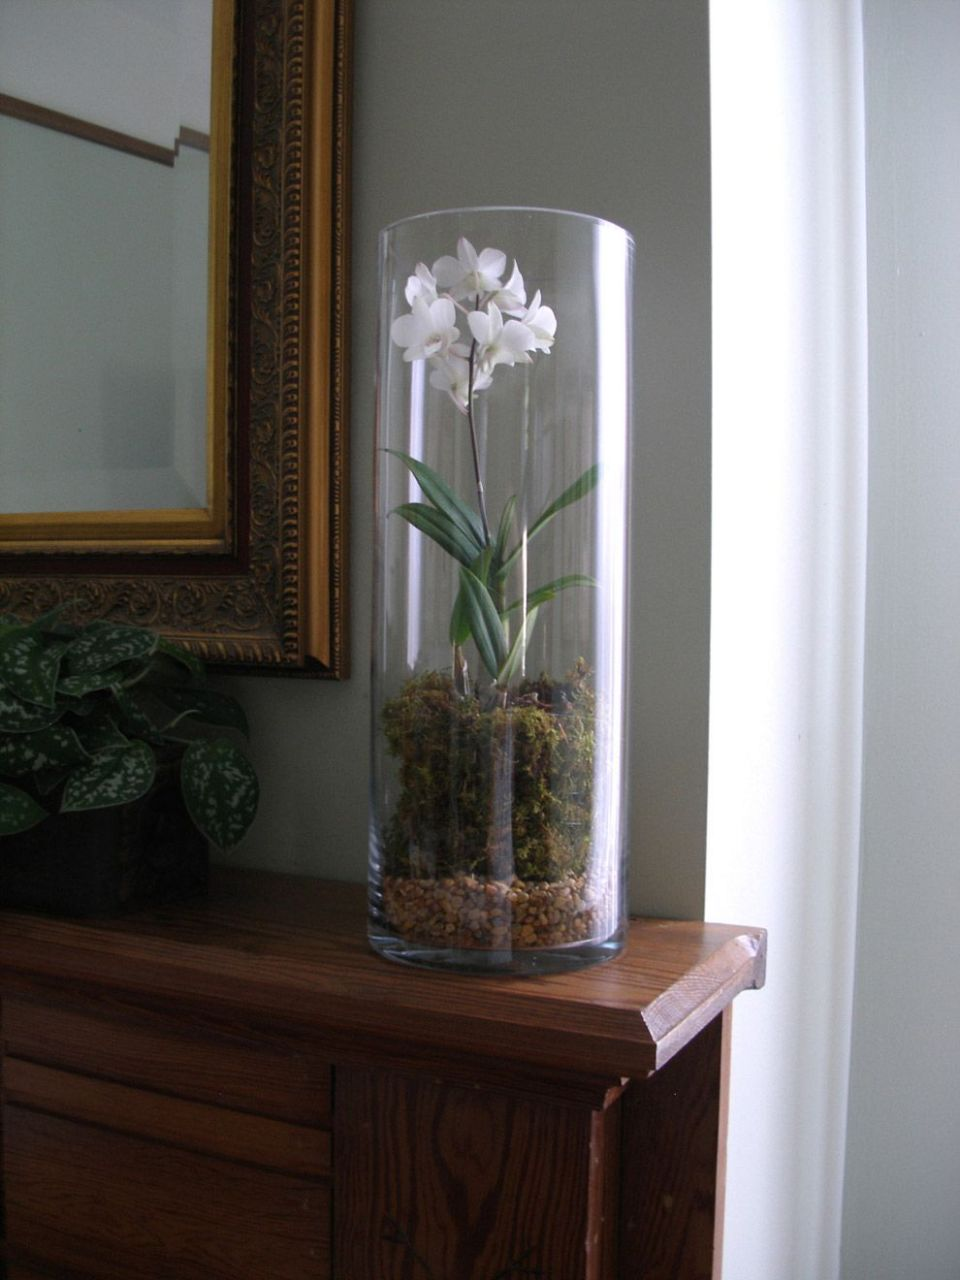 Using Round Cylinder Clear Glass Extra Tall Vase for orchid ..